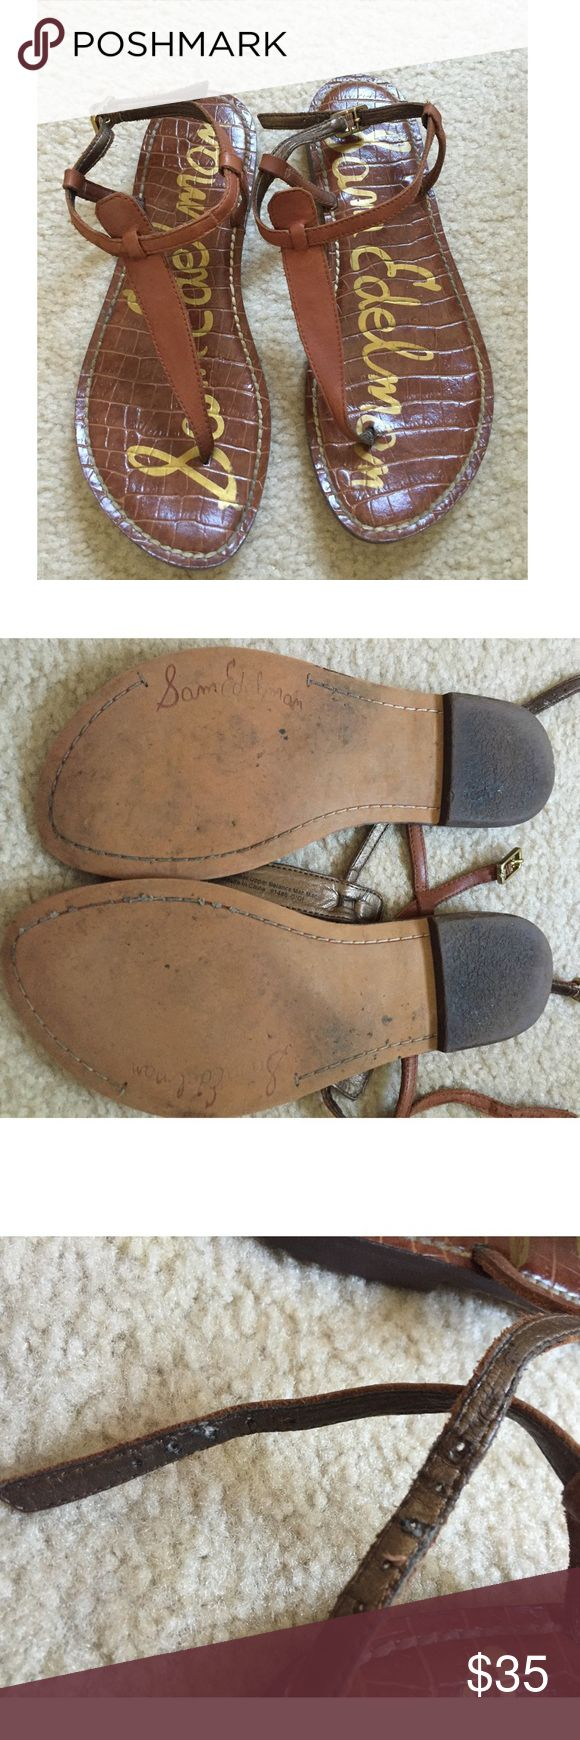 Sam Edelman Gigi Strap Sandals Brown Sam Edelman sandals. Used in good condition. Do not have original box. Sandal wear and tear shown in pictures. Left sandal strap is a bit worn. These are very comfortable sandals. Sam Edelman Shoes Sandals